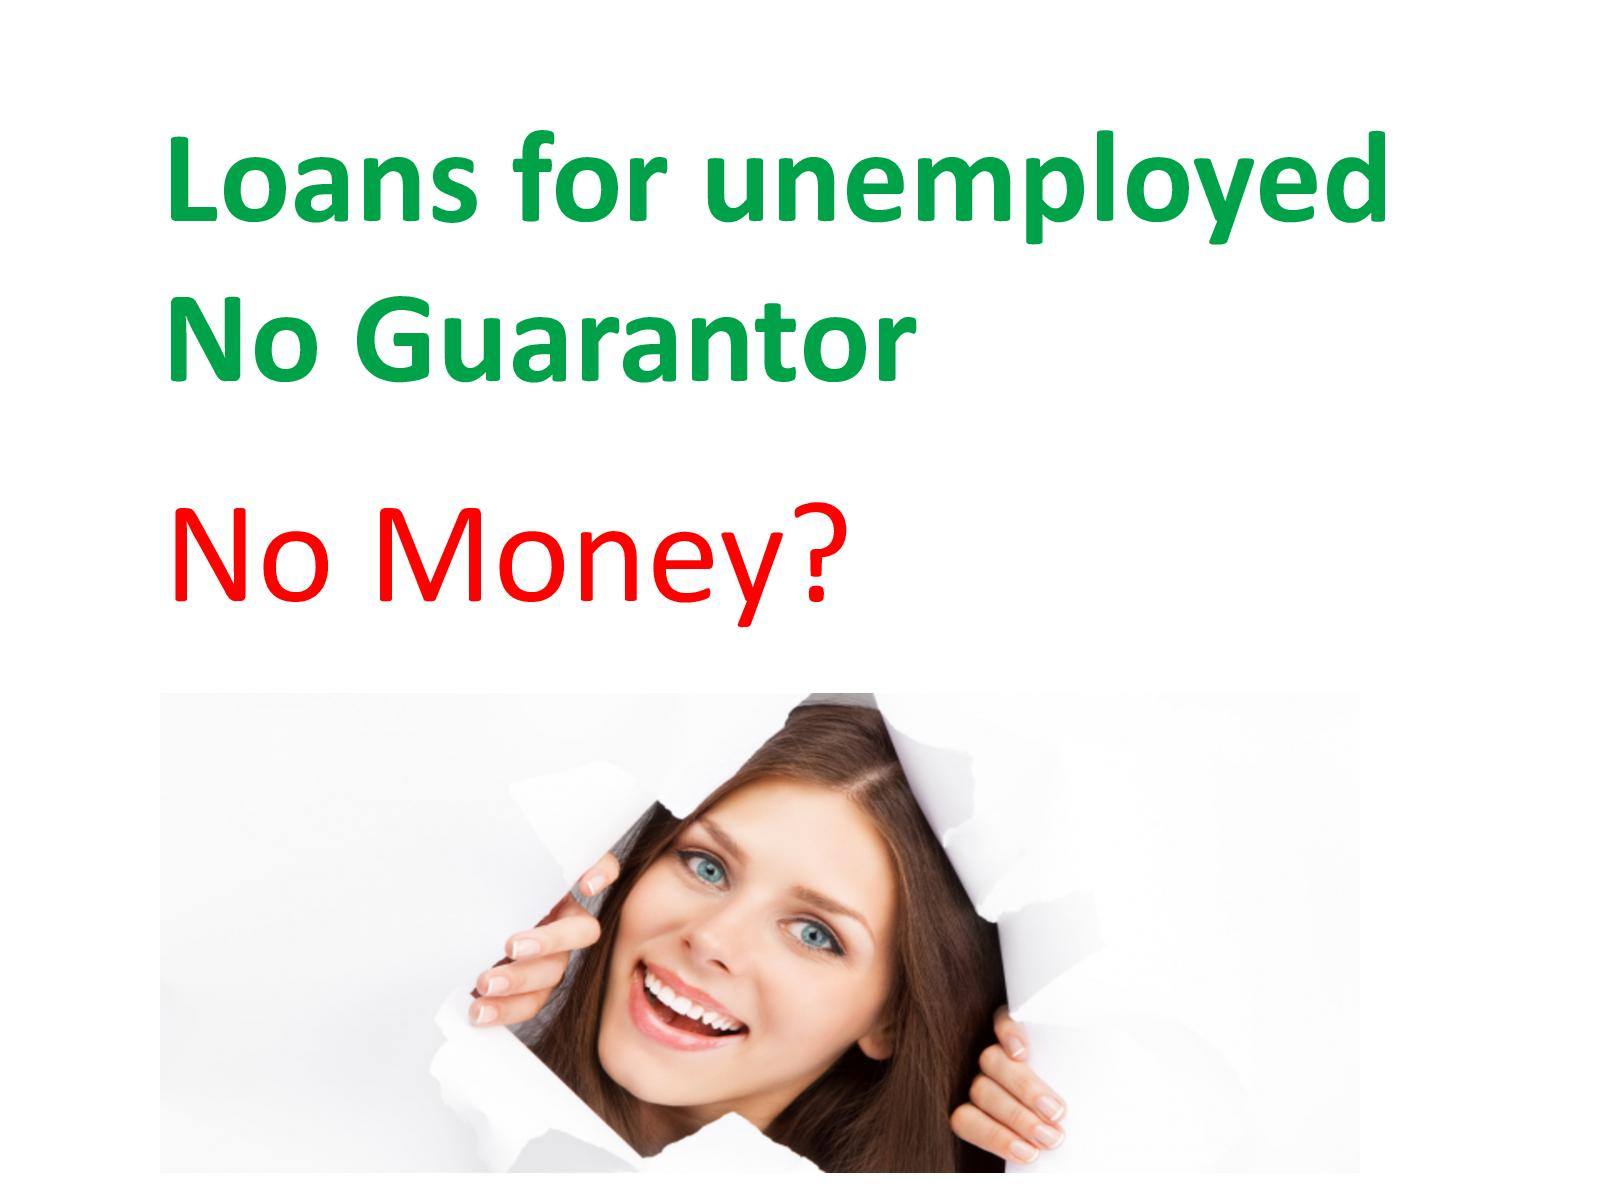 How to get a loan without a guarantor